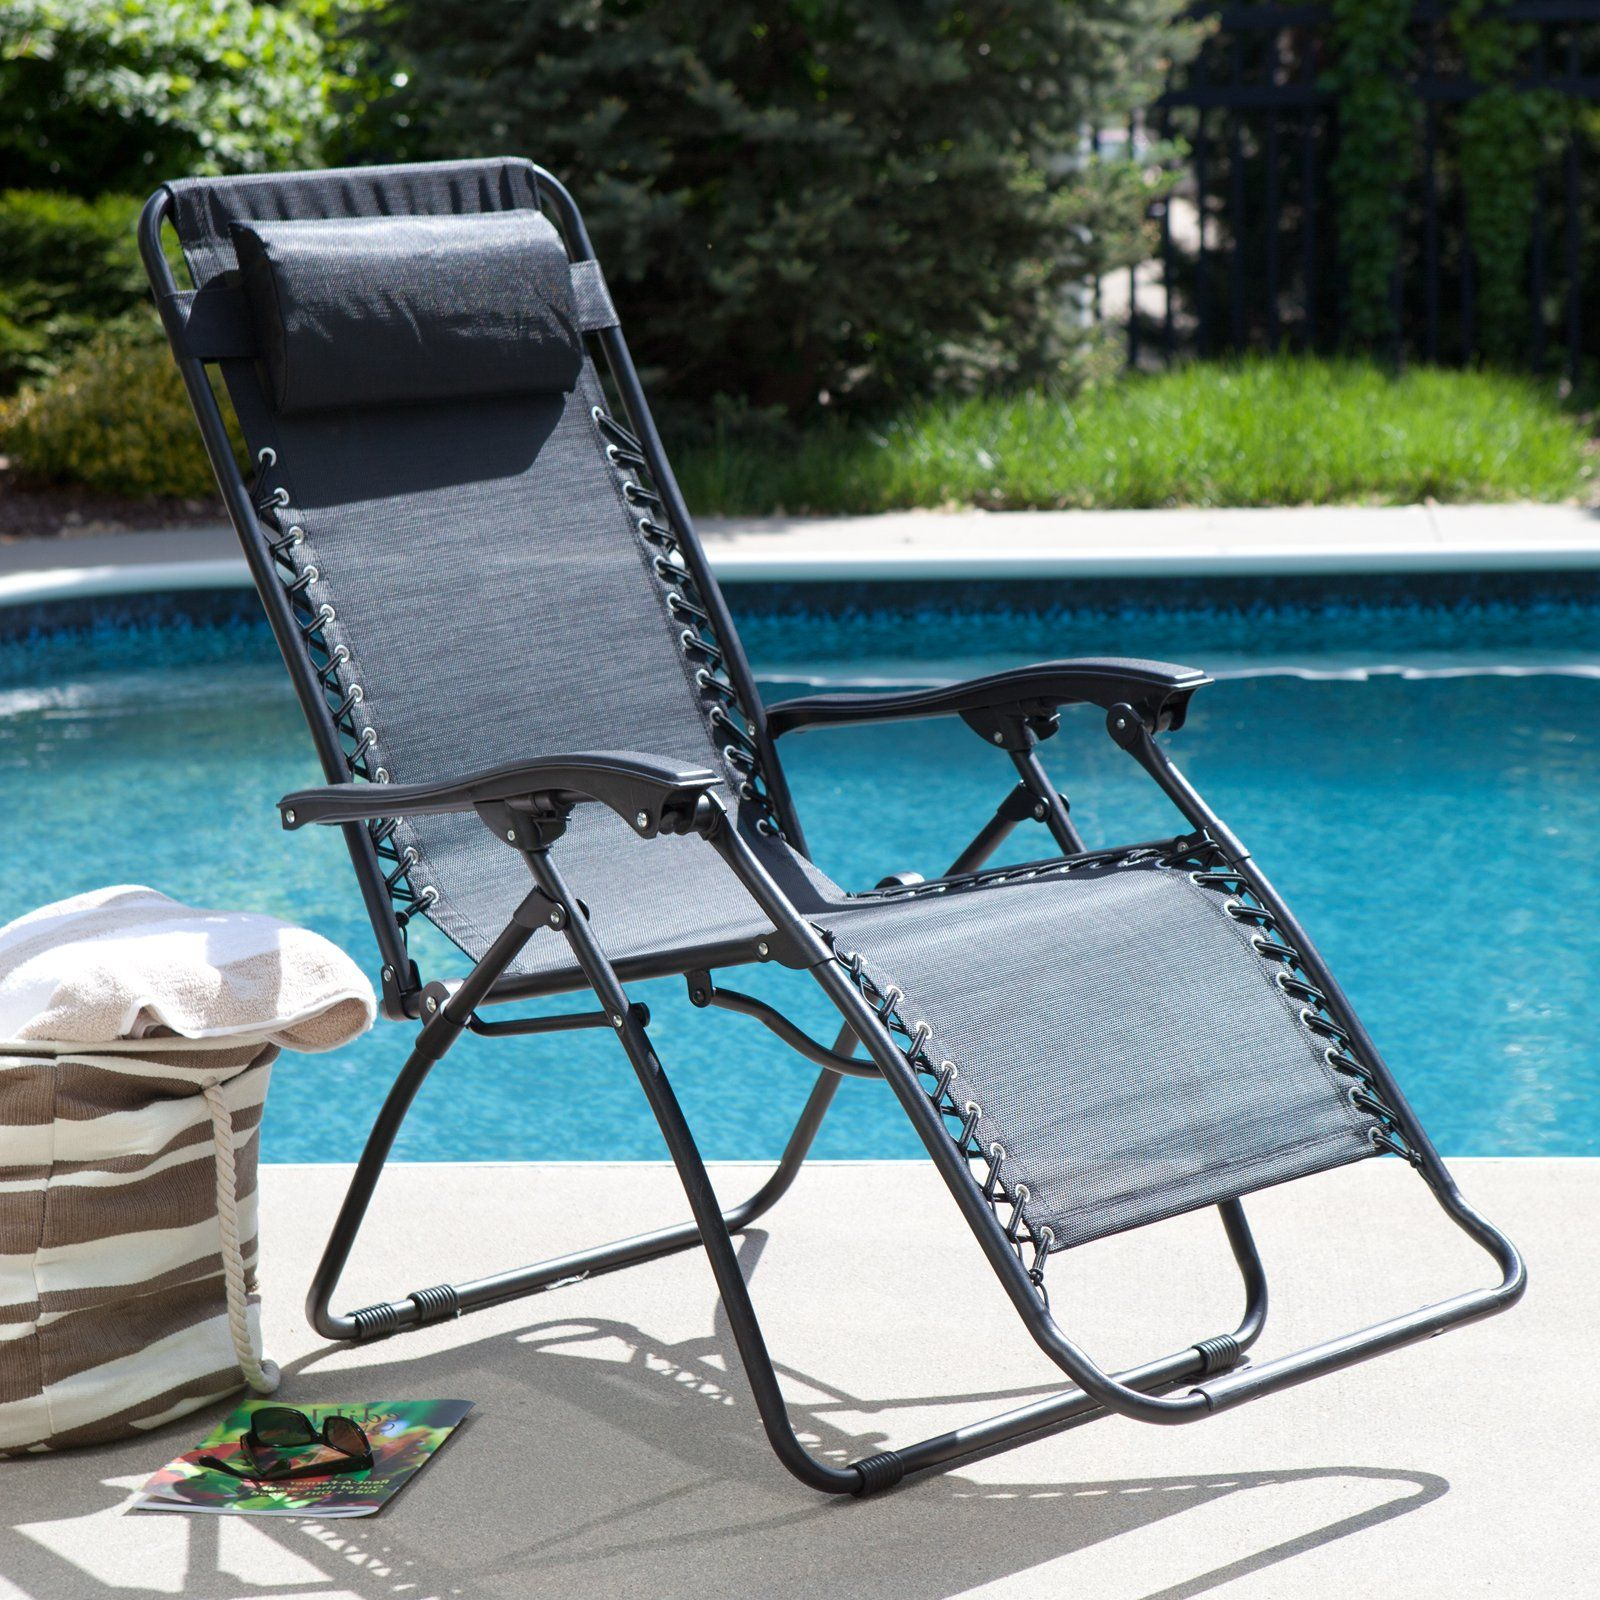 $55 +$5 Rush SH Caravan Canopy Zero Gravity Lounge Chair   Outdoor Chaise  Lounges At